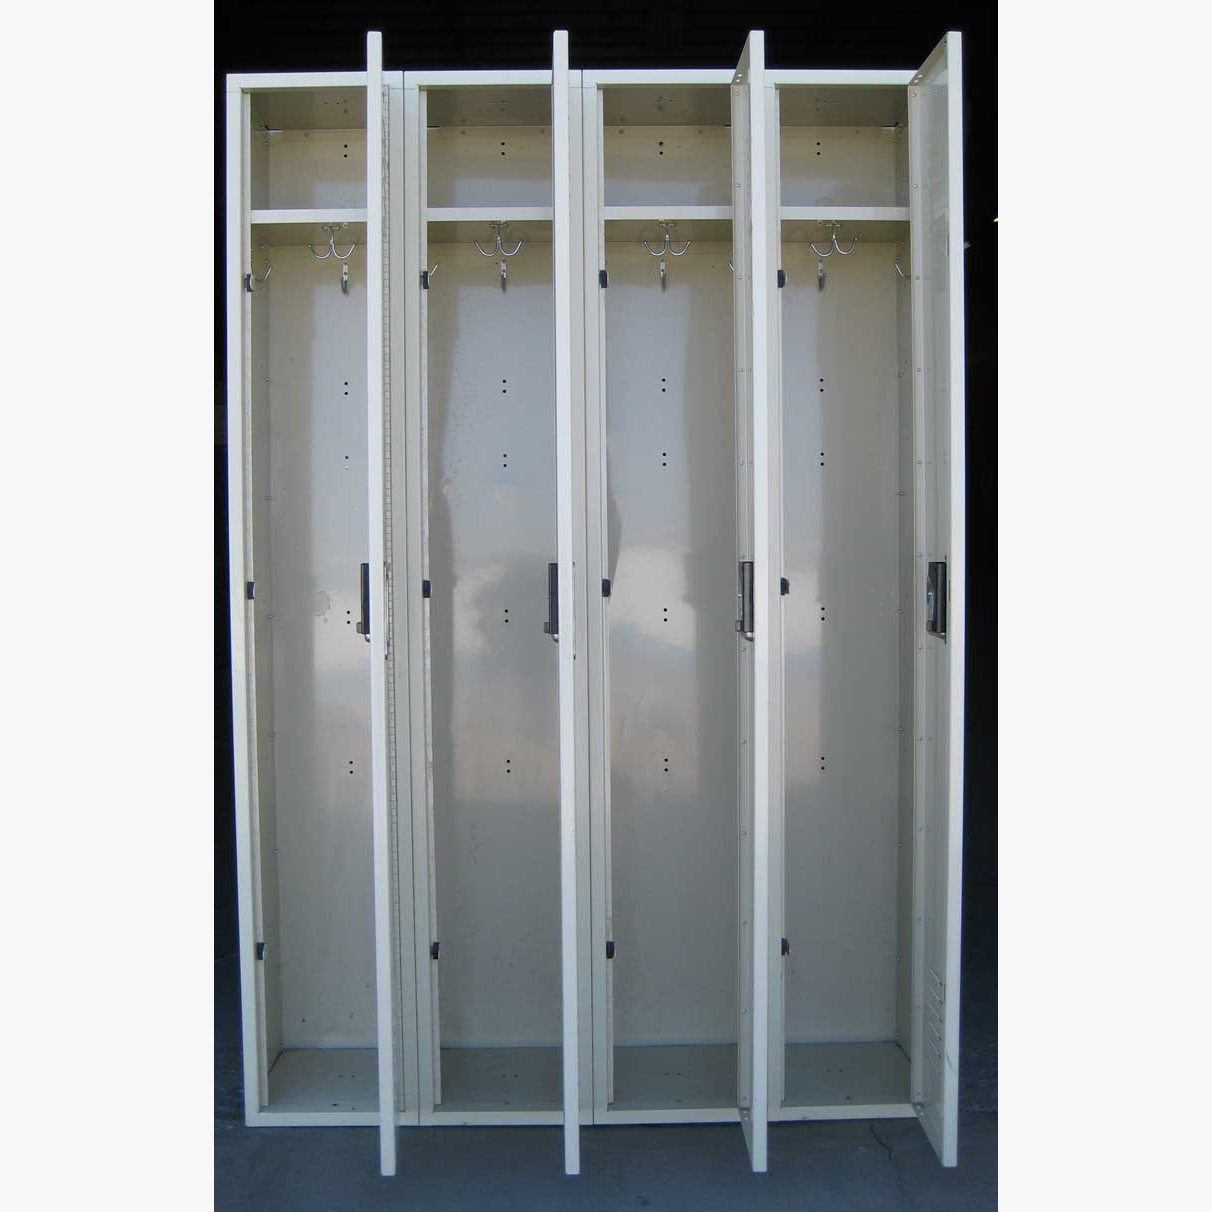 Discounted Steel Lockersimage 2 image 2